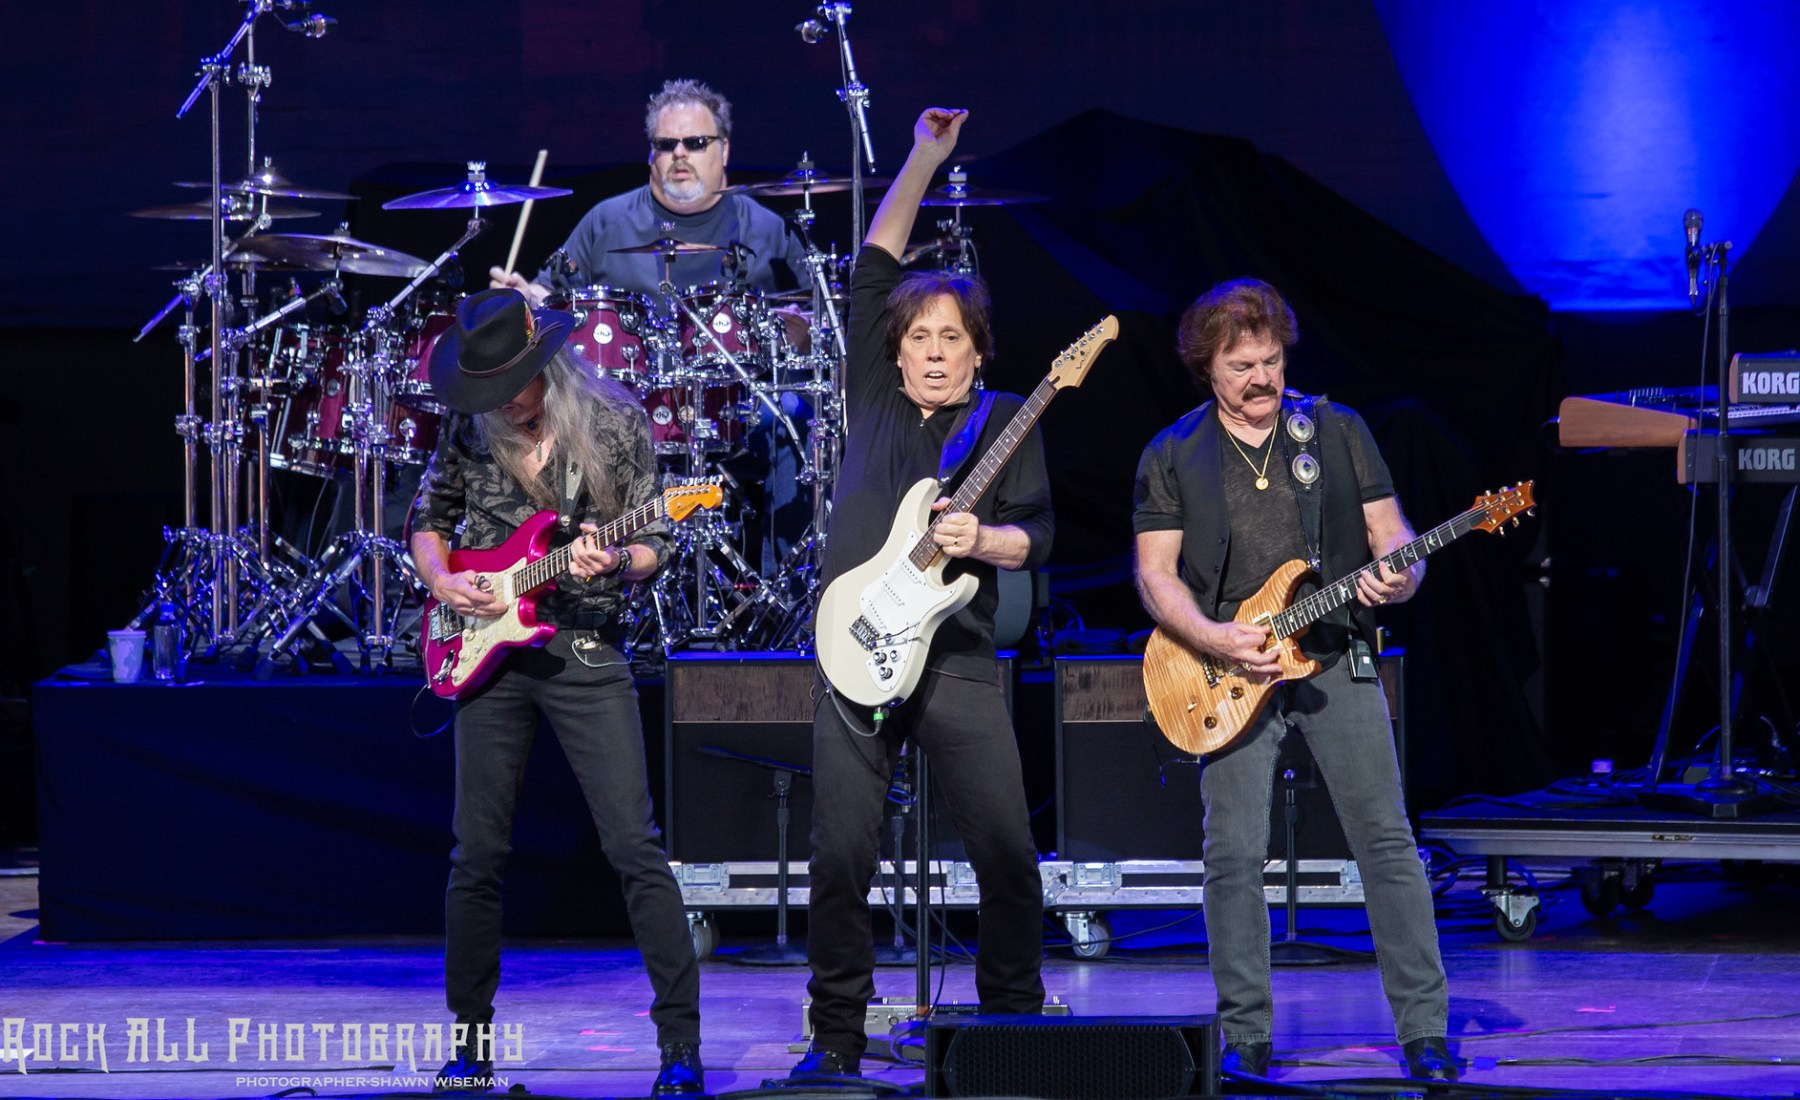 Doobie Brothers - Riverbend Music Center Cincinnati, OH - 6/27/18